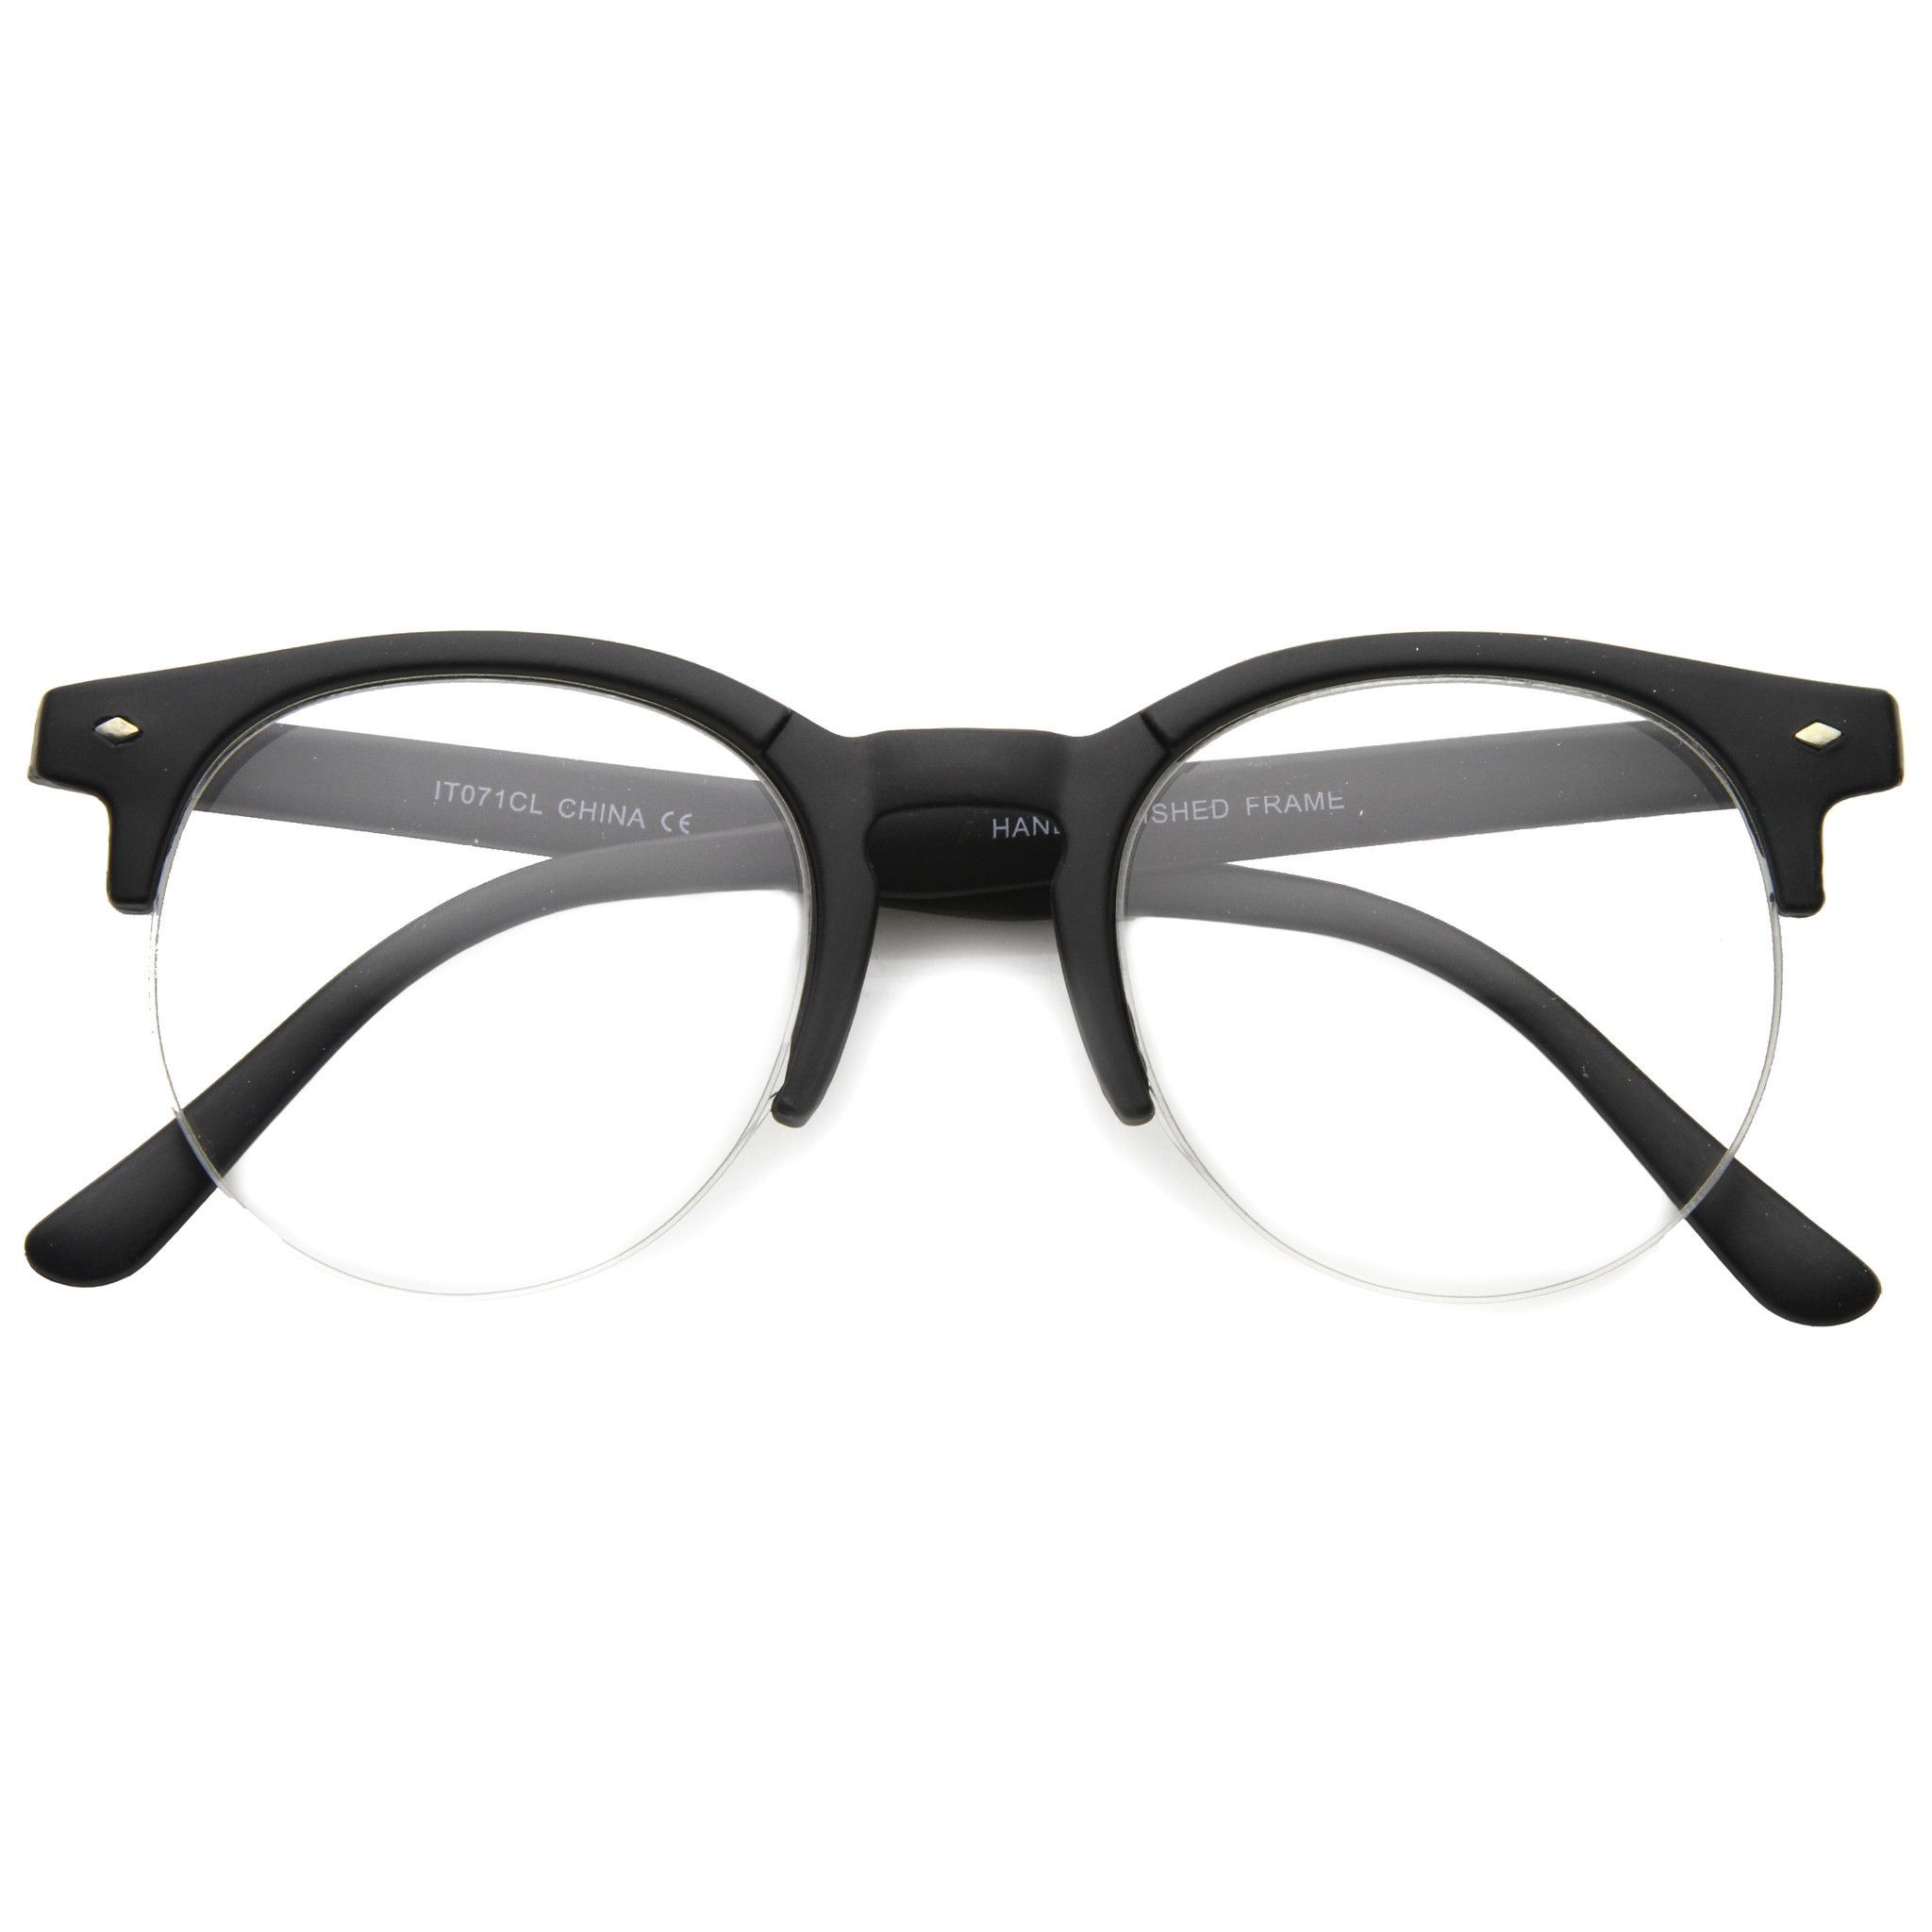 Indie Dapper Round Half Frame Clear Lens Glasses A061 | Accessories ...